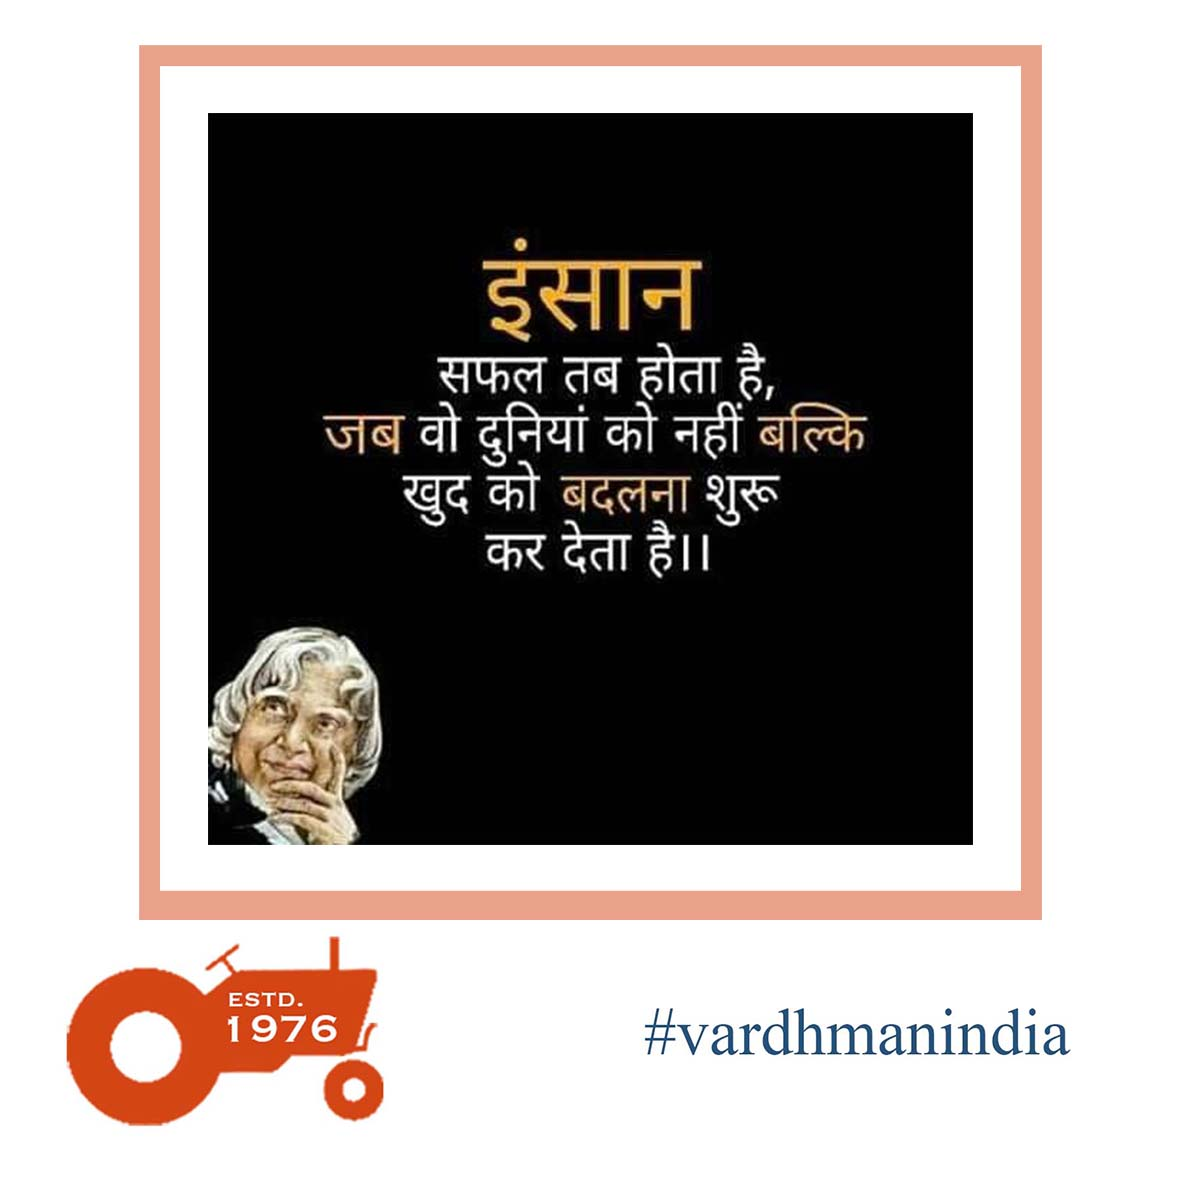 #inspiration #everyonewins #apjabdulkalam  #tractor #attachments #manufacturer #retailer #meerut #implements #agriculture #farmer #makeindia #supplier #farmequipment #followus #mondaymotivation #vardhmanindia #tractorquotepic.twitter.com/pDndEINh1x